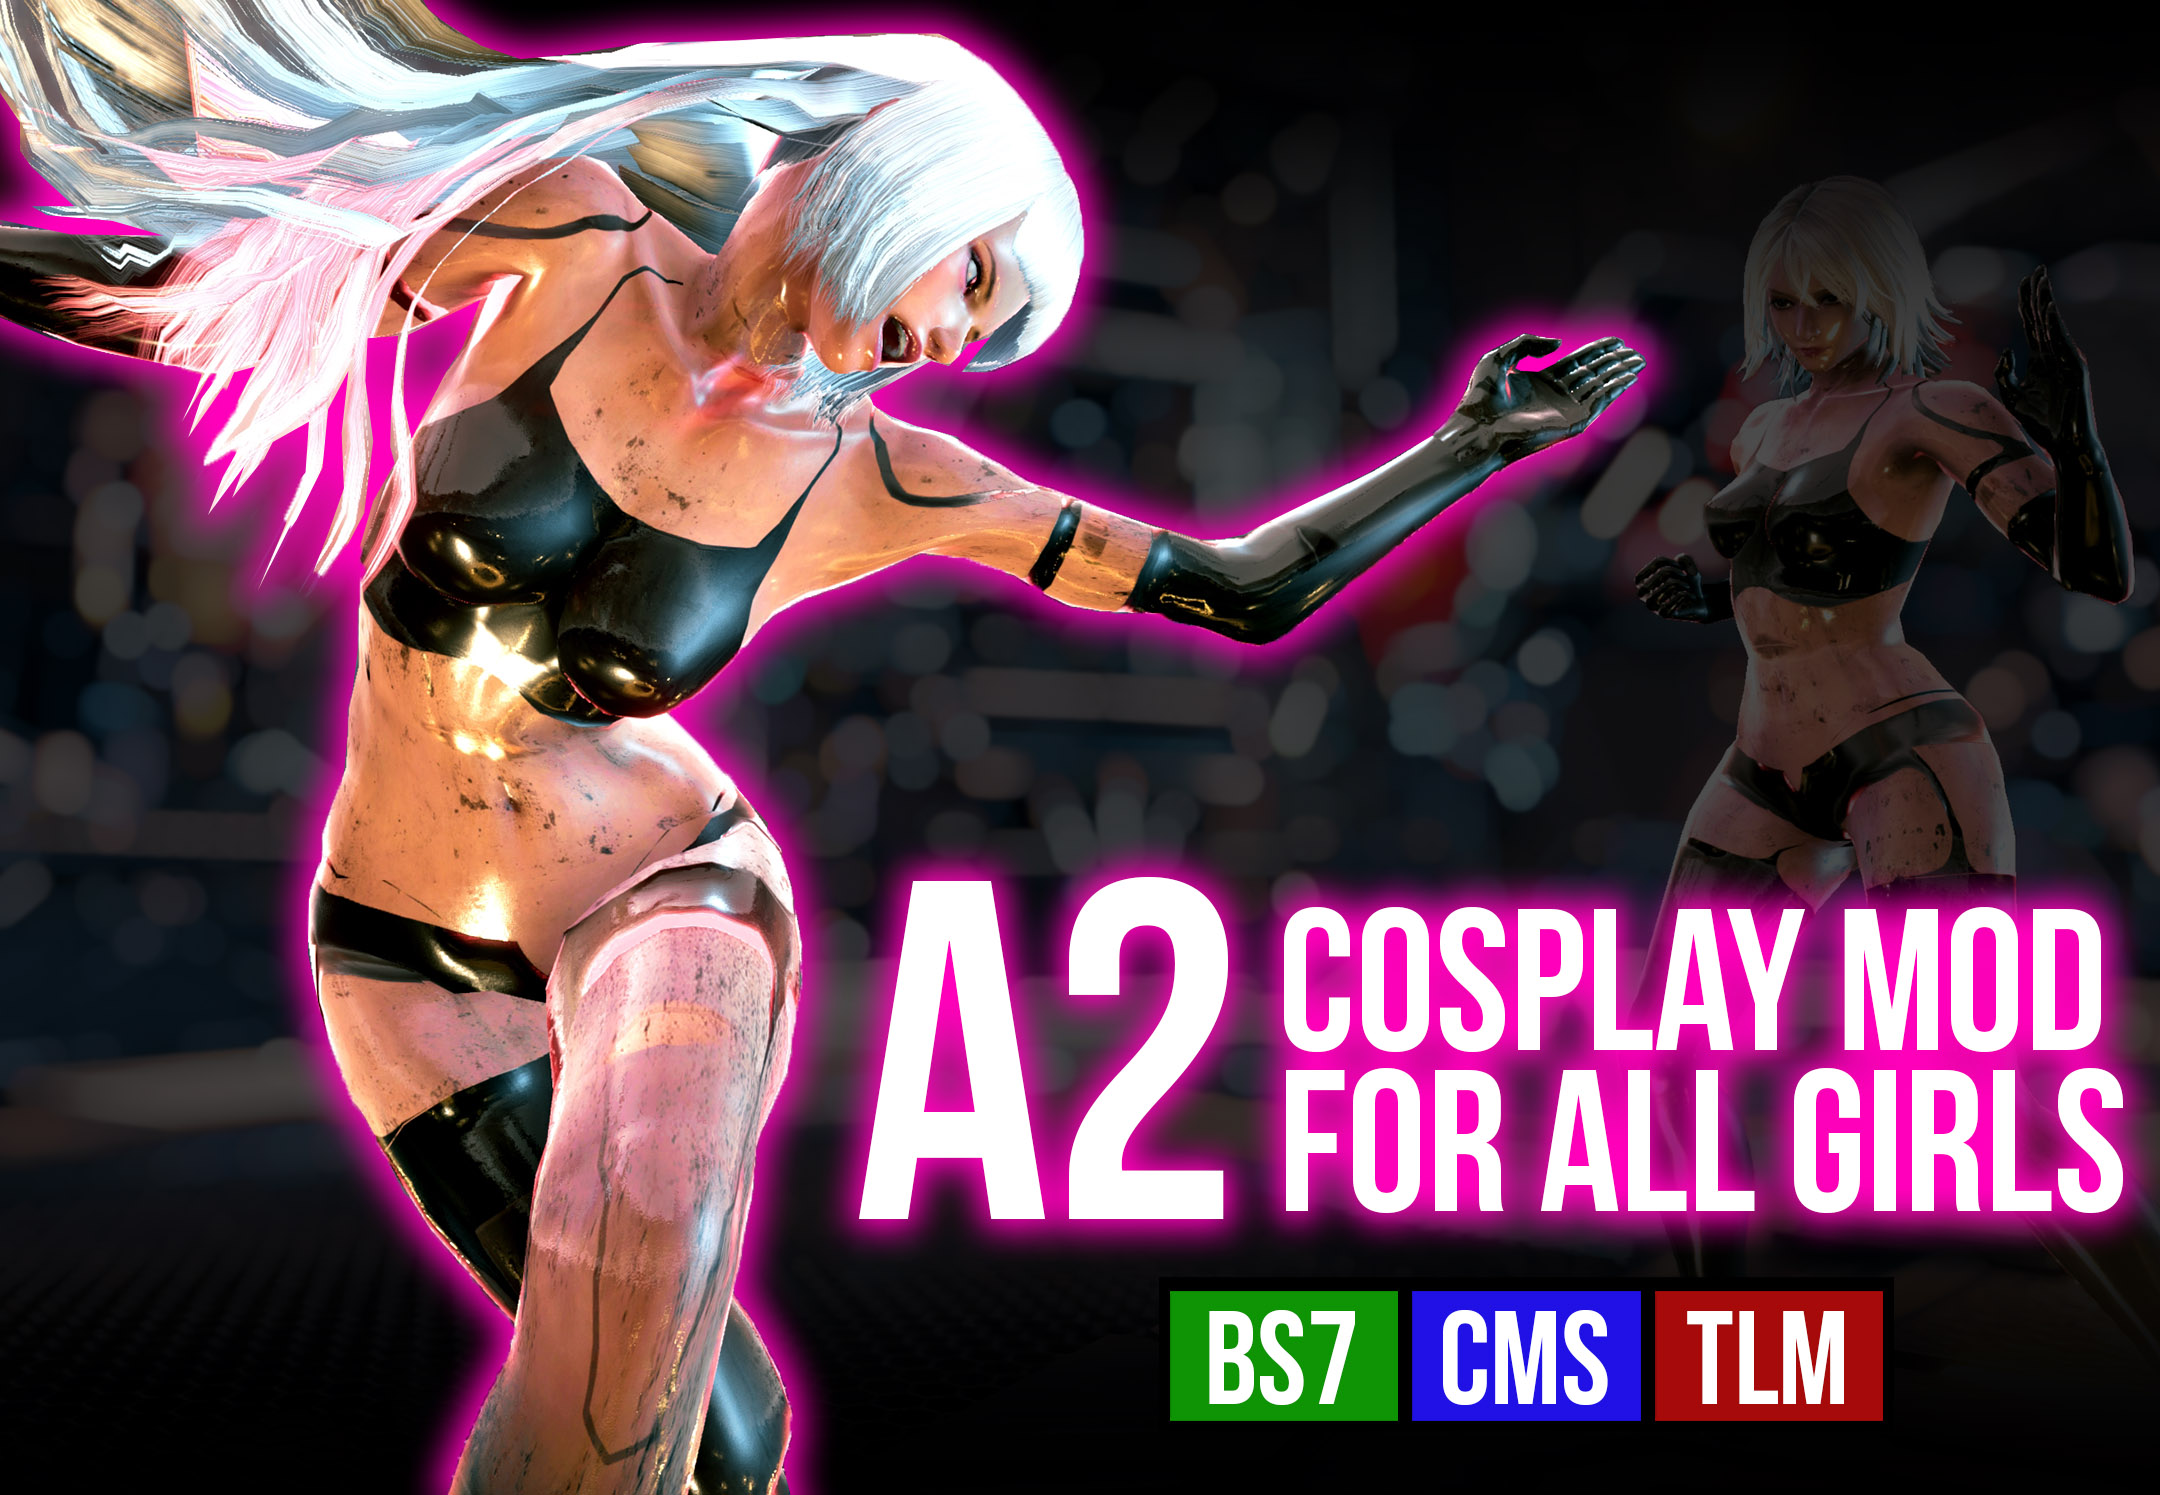 024 A2 Cosplay Mod (updated)